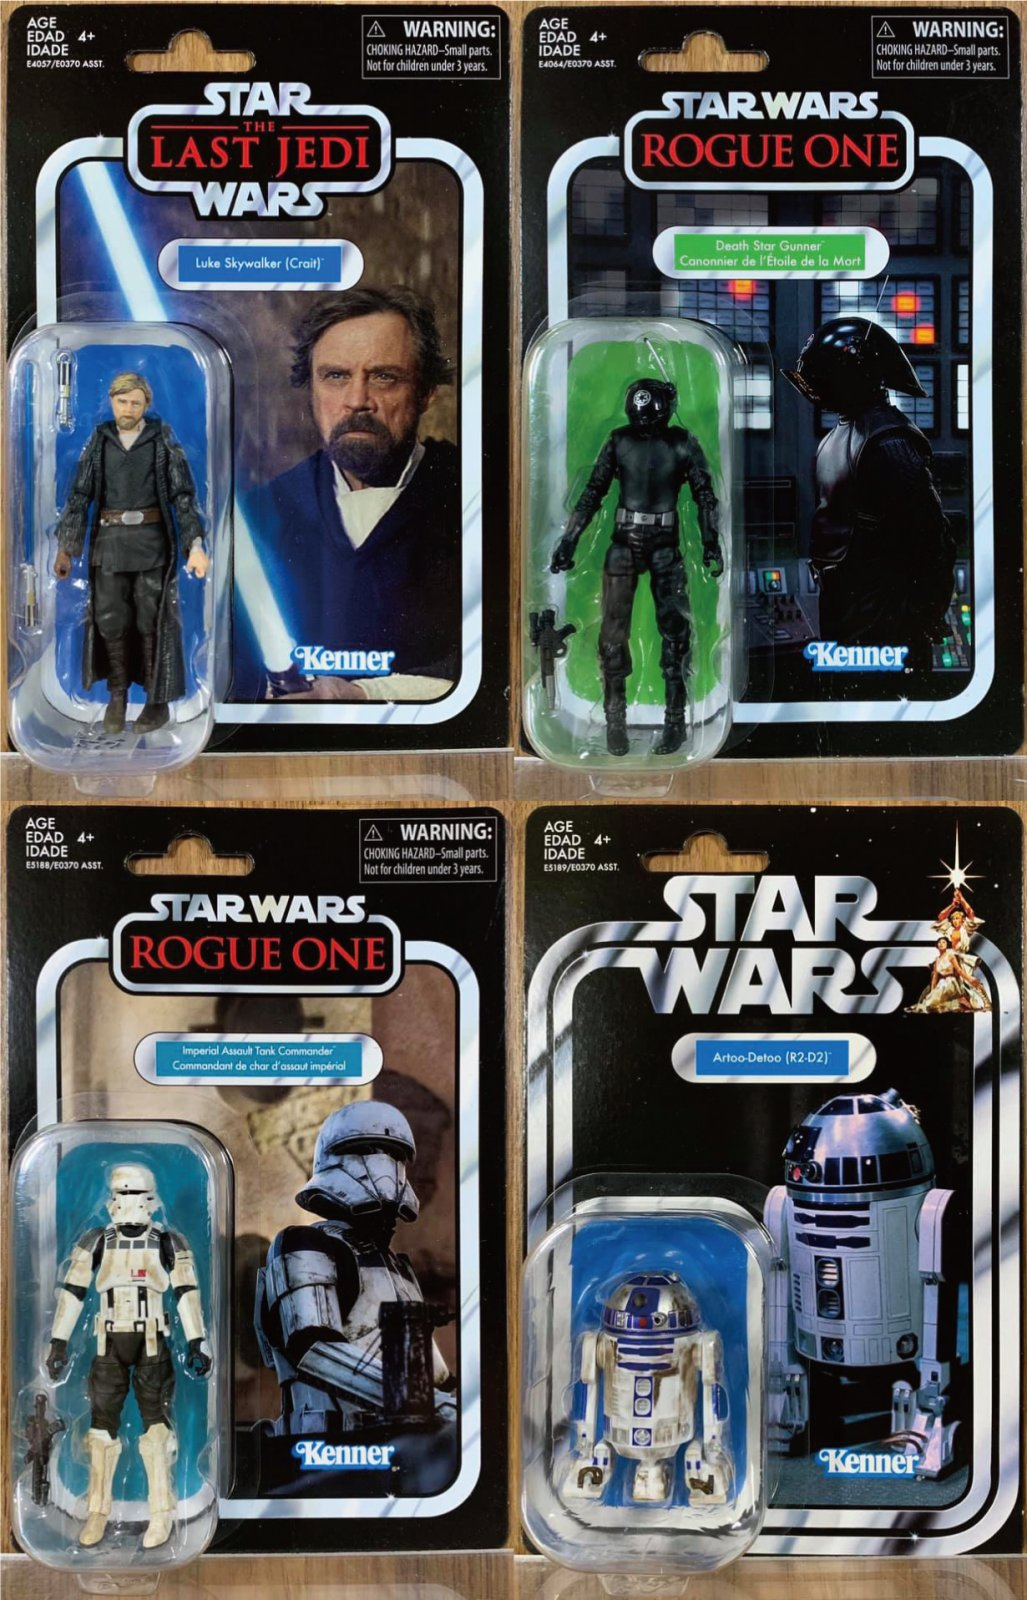 Star Wars Mandolorian and The Child Custom 3.75 Vintage Kenner Style Figure set!